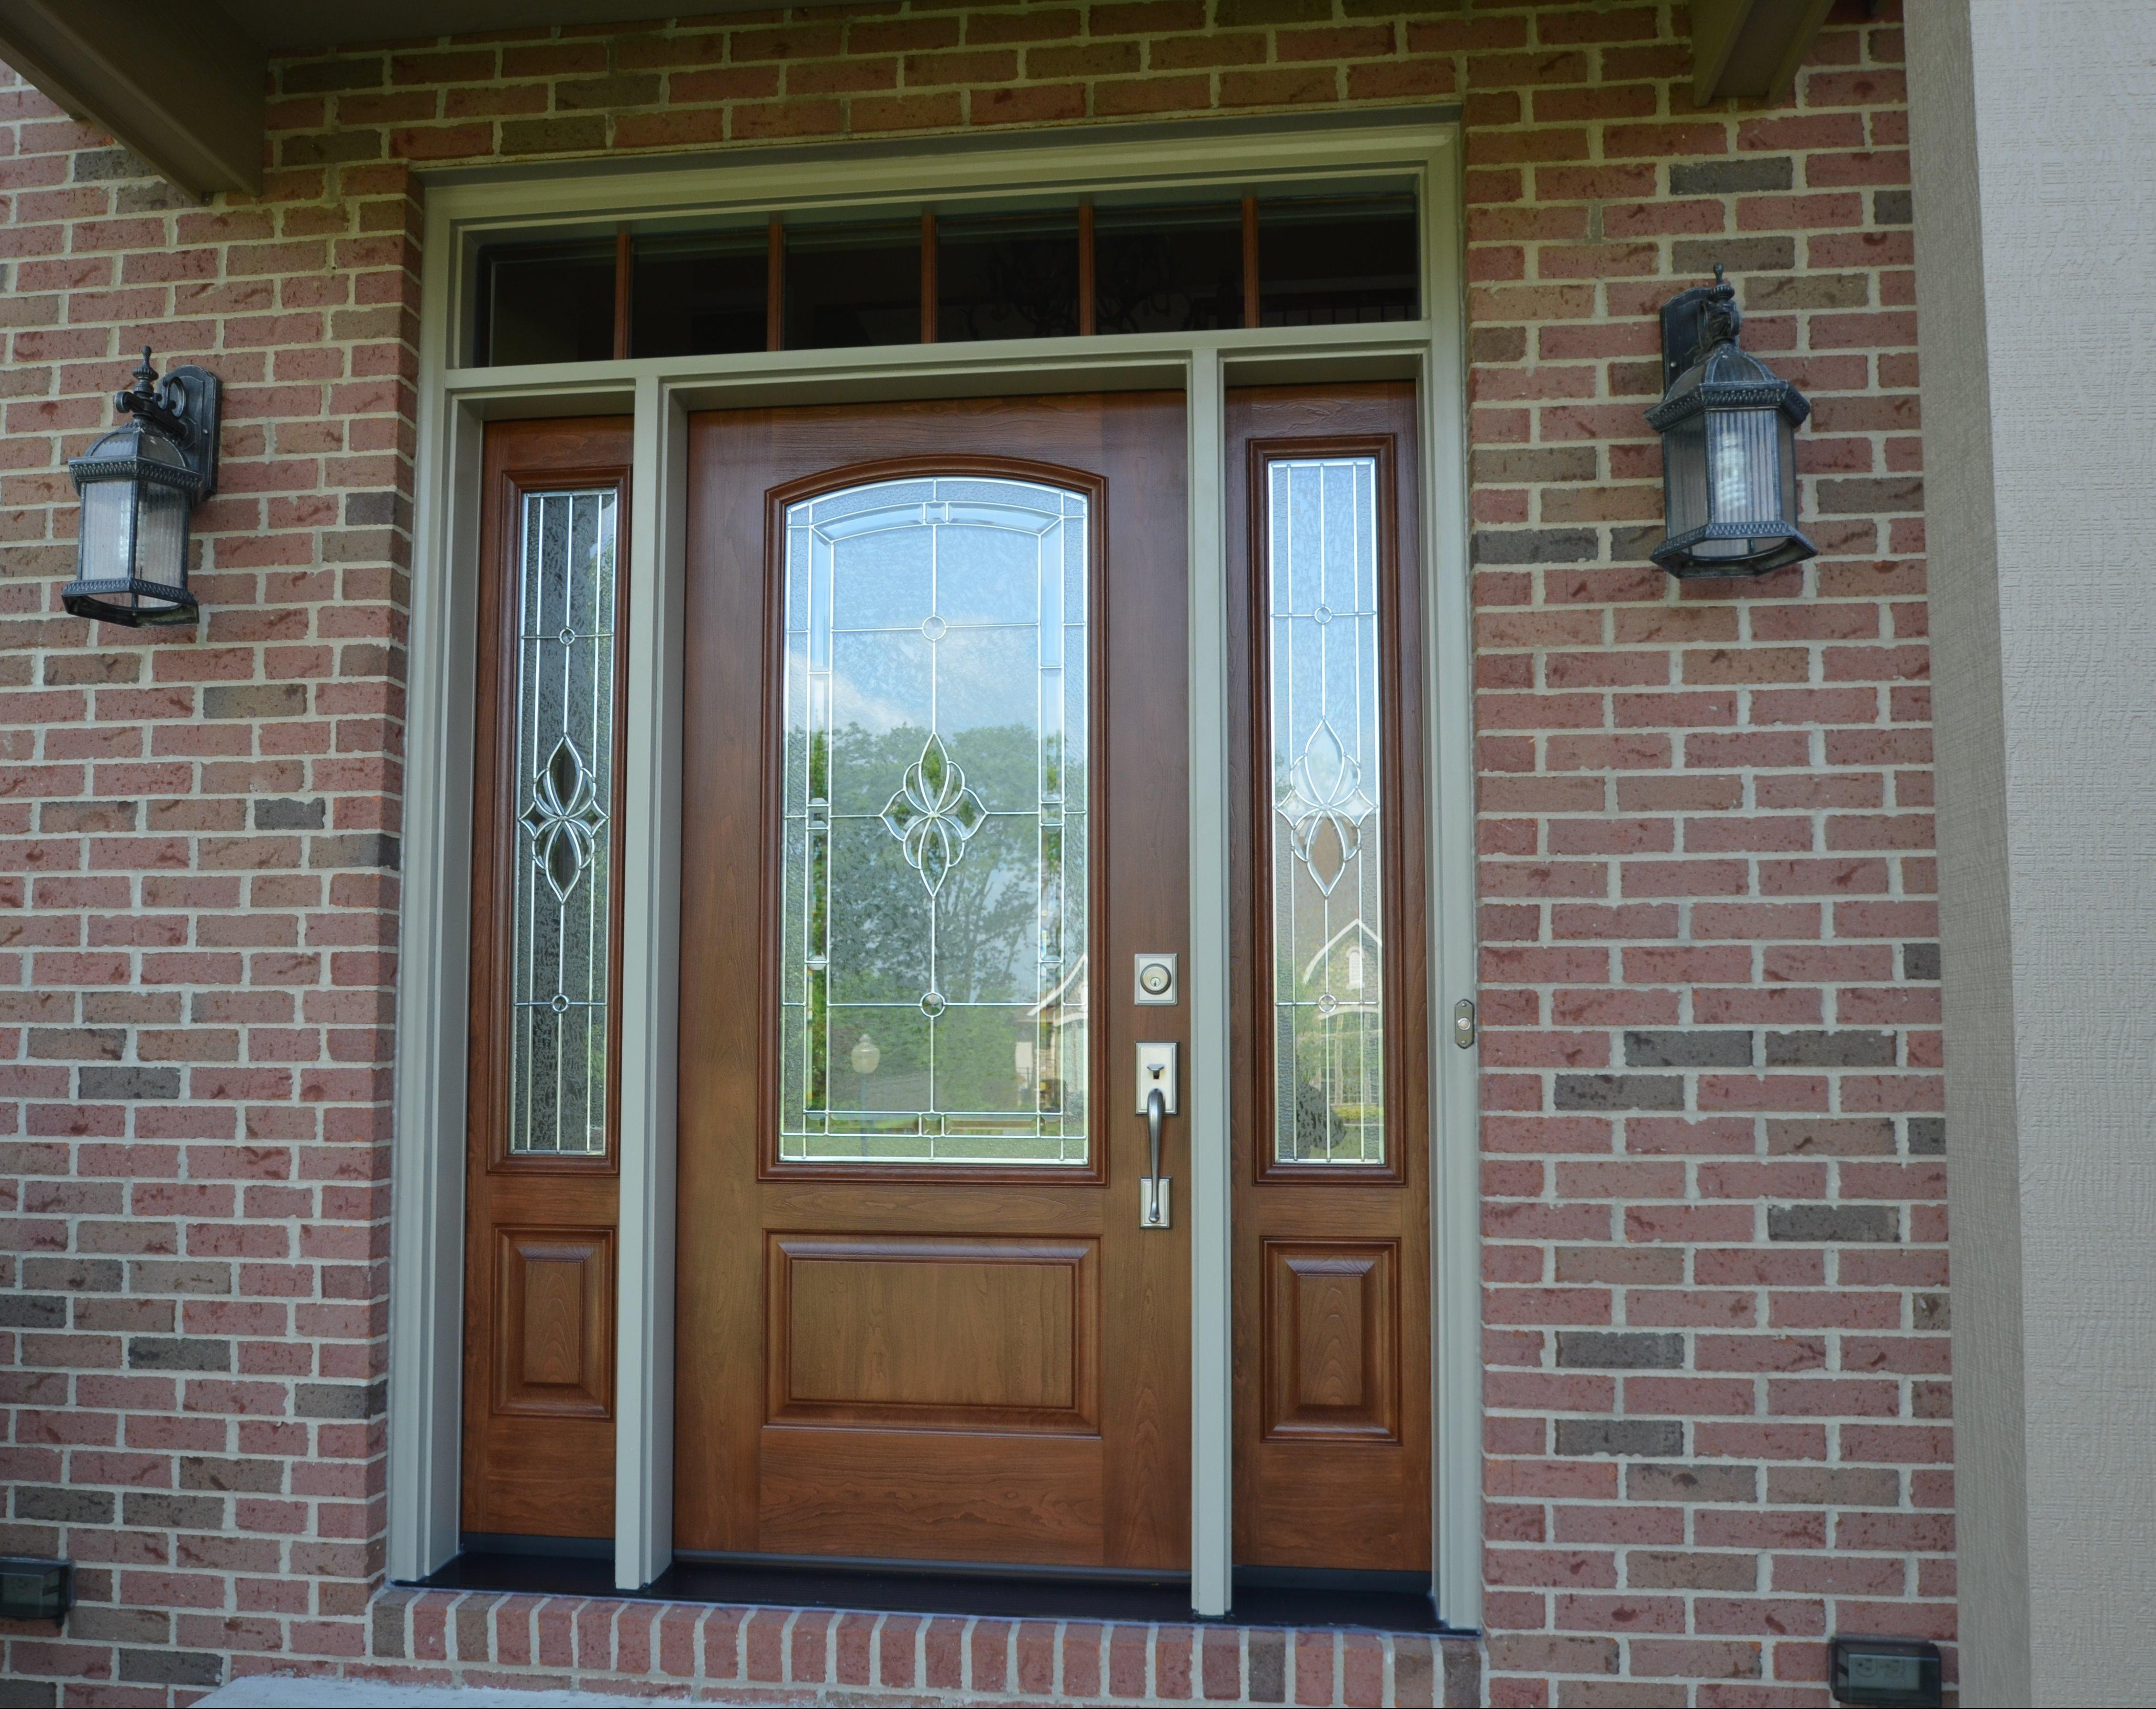 Window and door designs llc coupons near me in dayton for Windows and doors near me